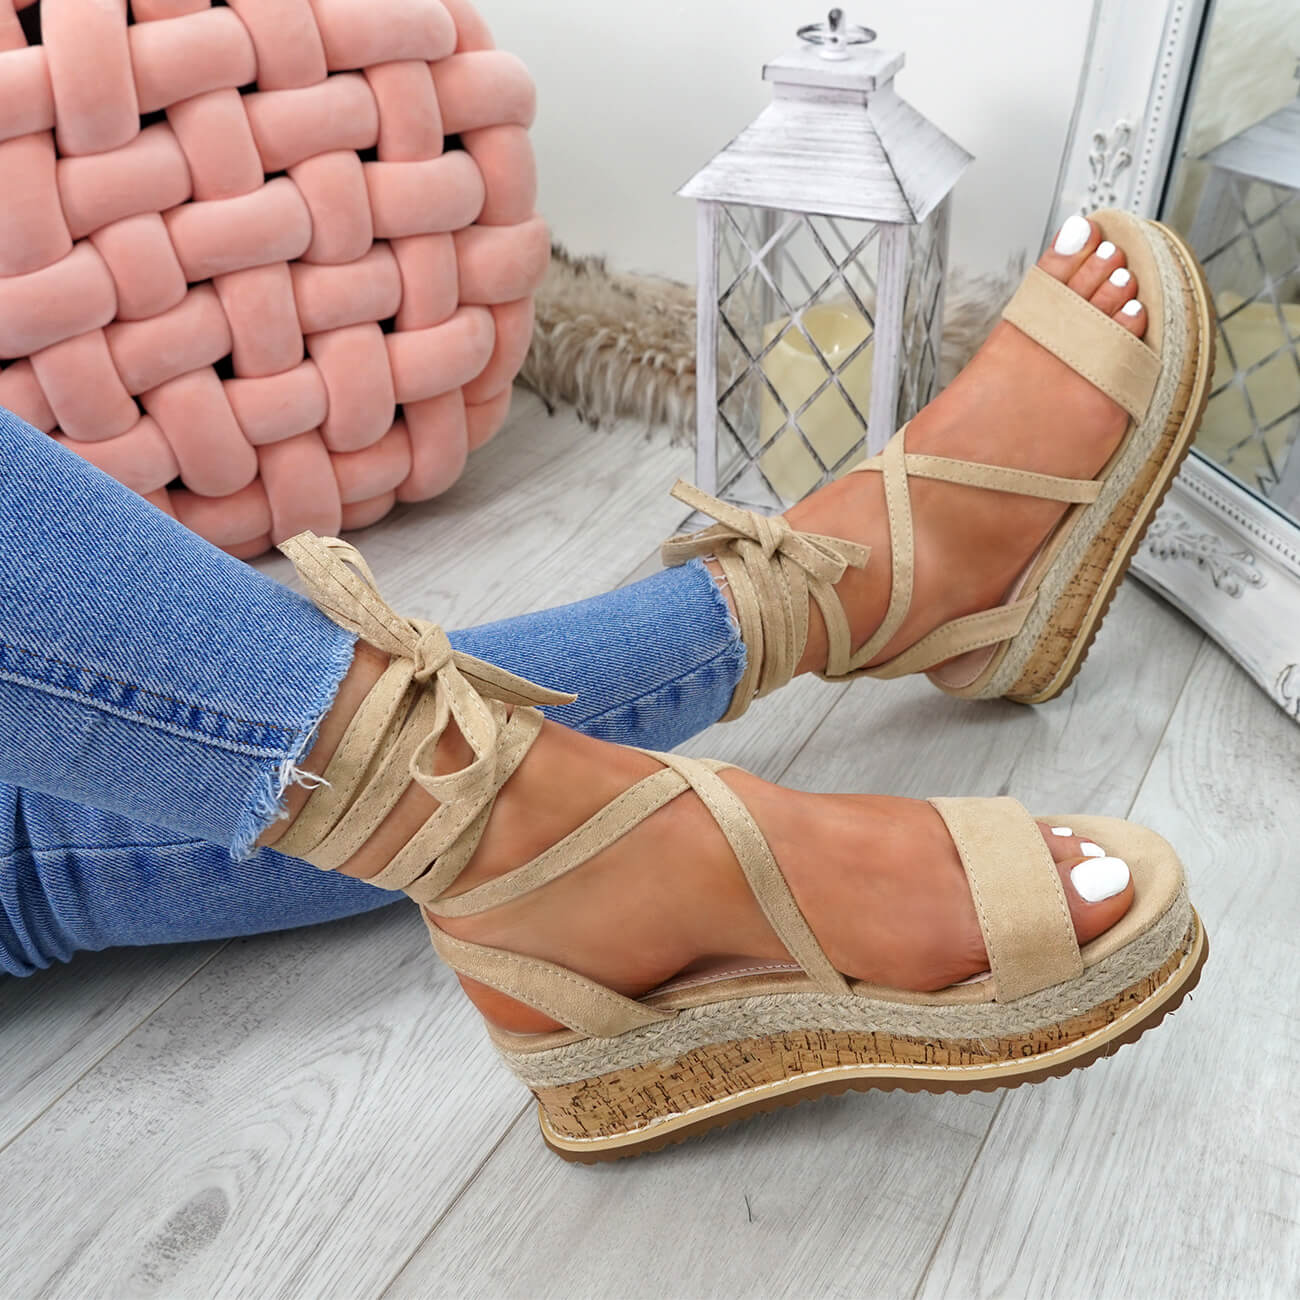 WOMENS-LADIES-ANKLE-WRAP-ESPADRILLE-FLATFORM-SANDALS-HEEL-SUMMER-SHOES-SIZE thumbnail 9